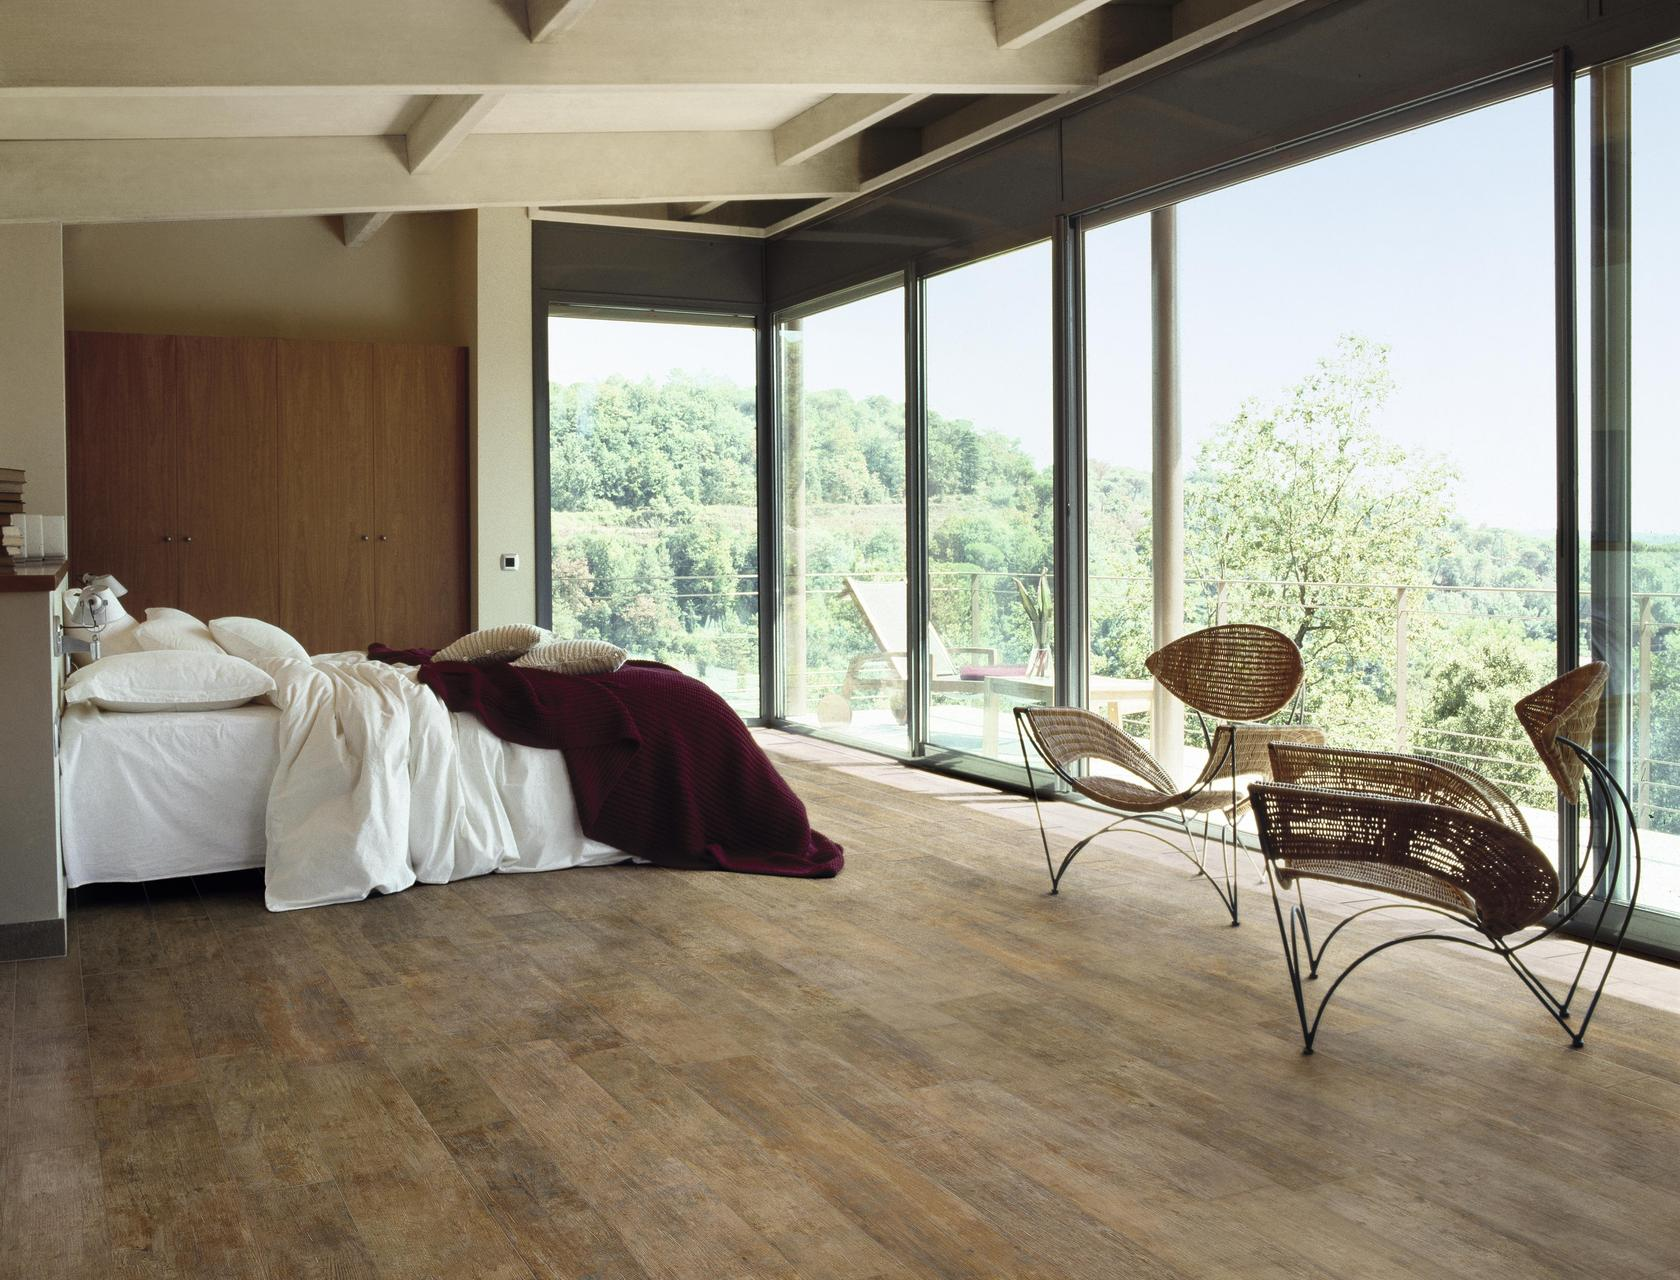 Wood Effect Beige Porcelain Tiles Rovere Impero